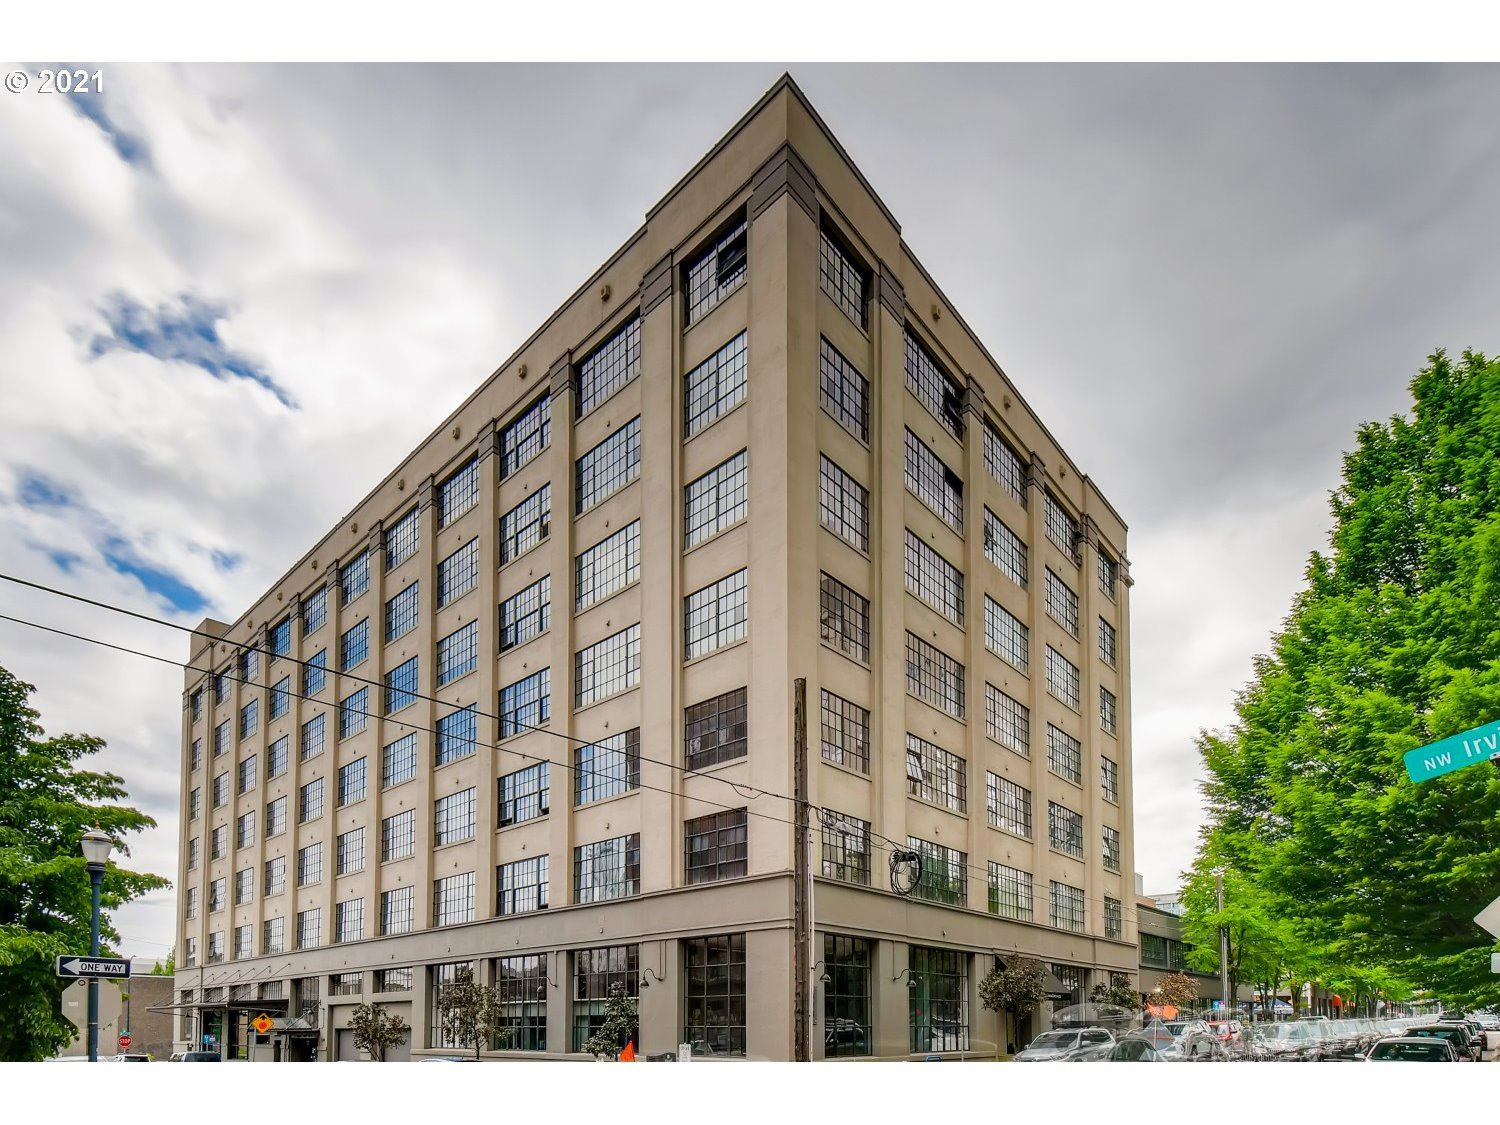 1314 NW IRVING ST #705, Portland, OR 97209 - MLS#: 21481716